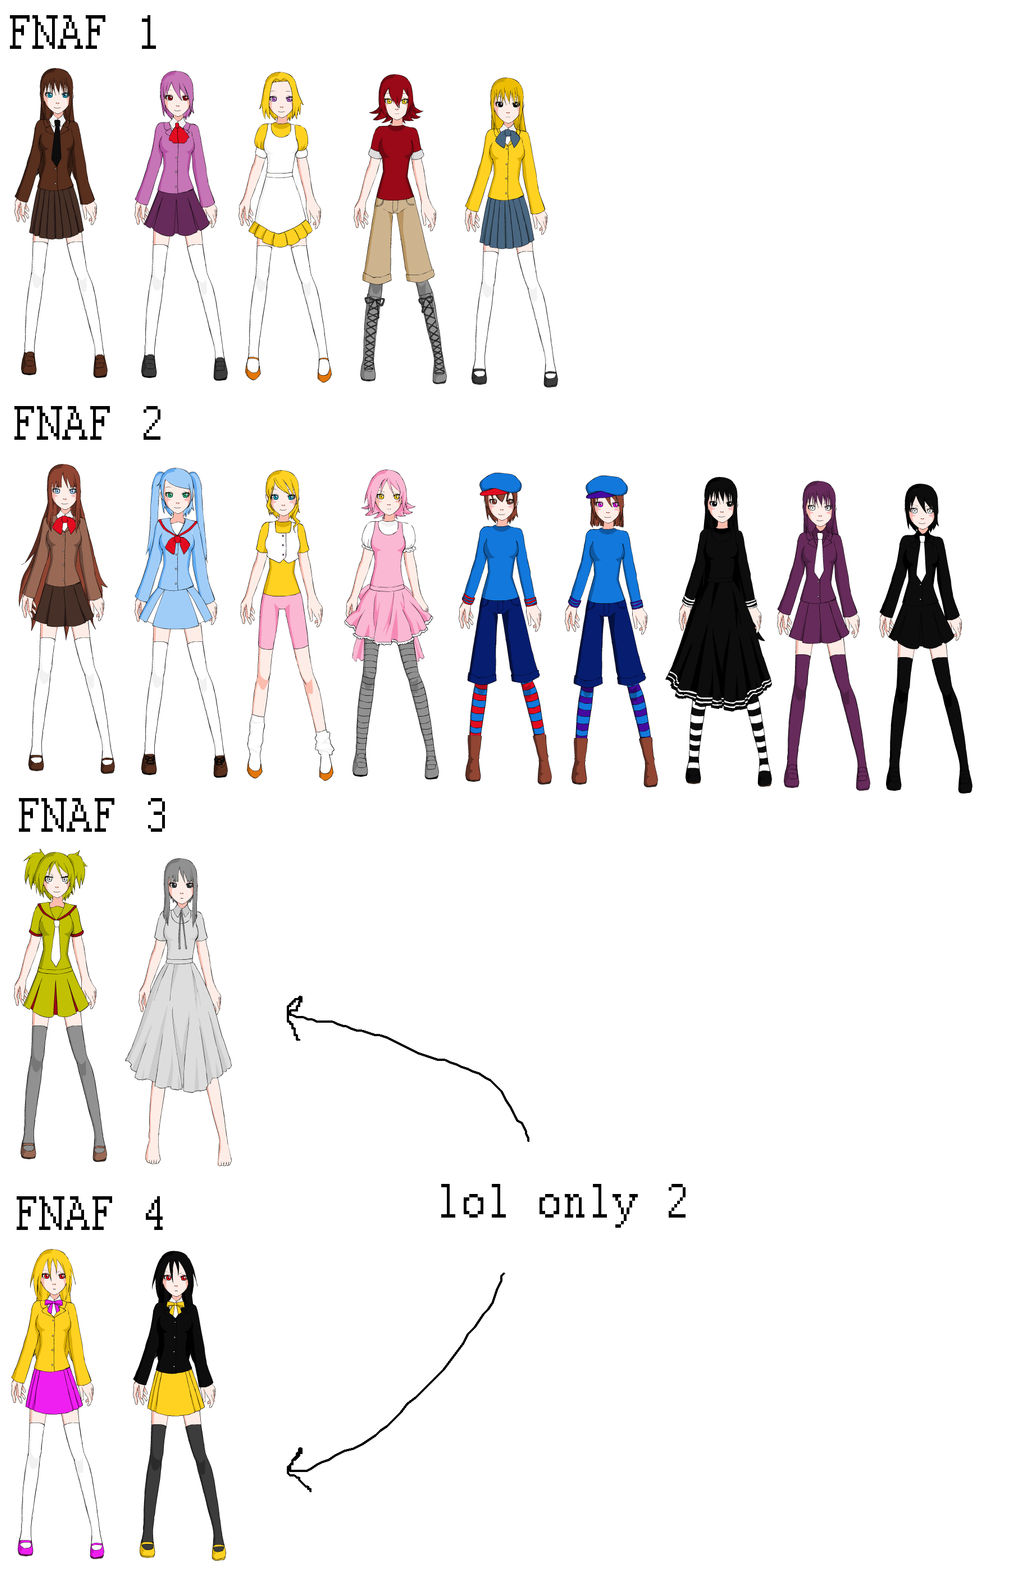 FNAF with school girl dress up v8 by SakuraKasai8 on DeviantArt